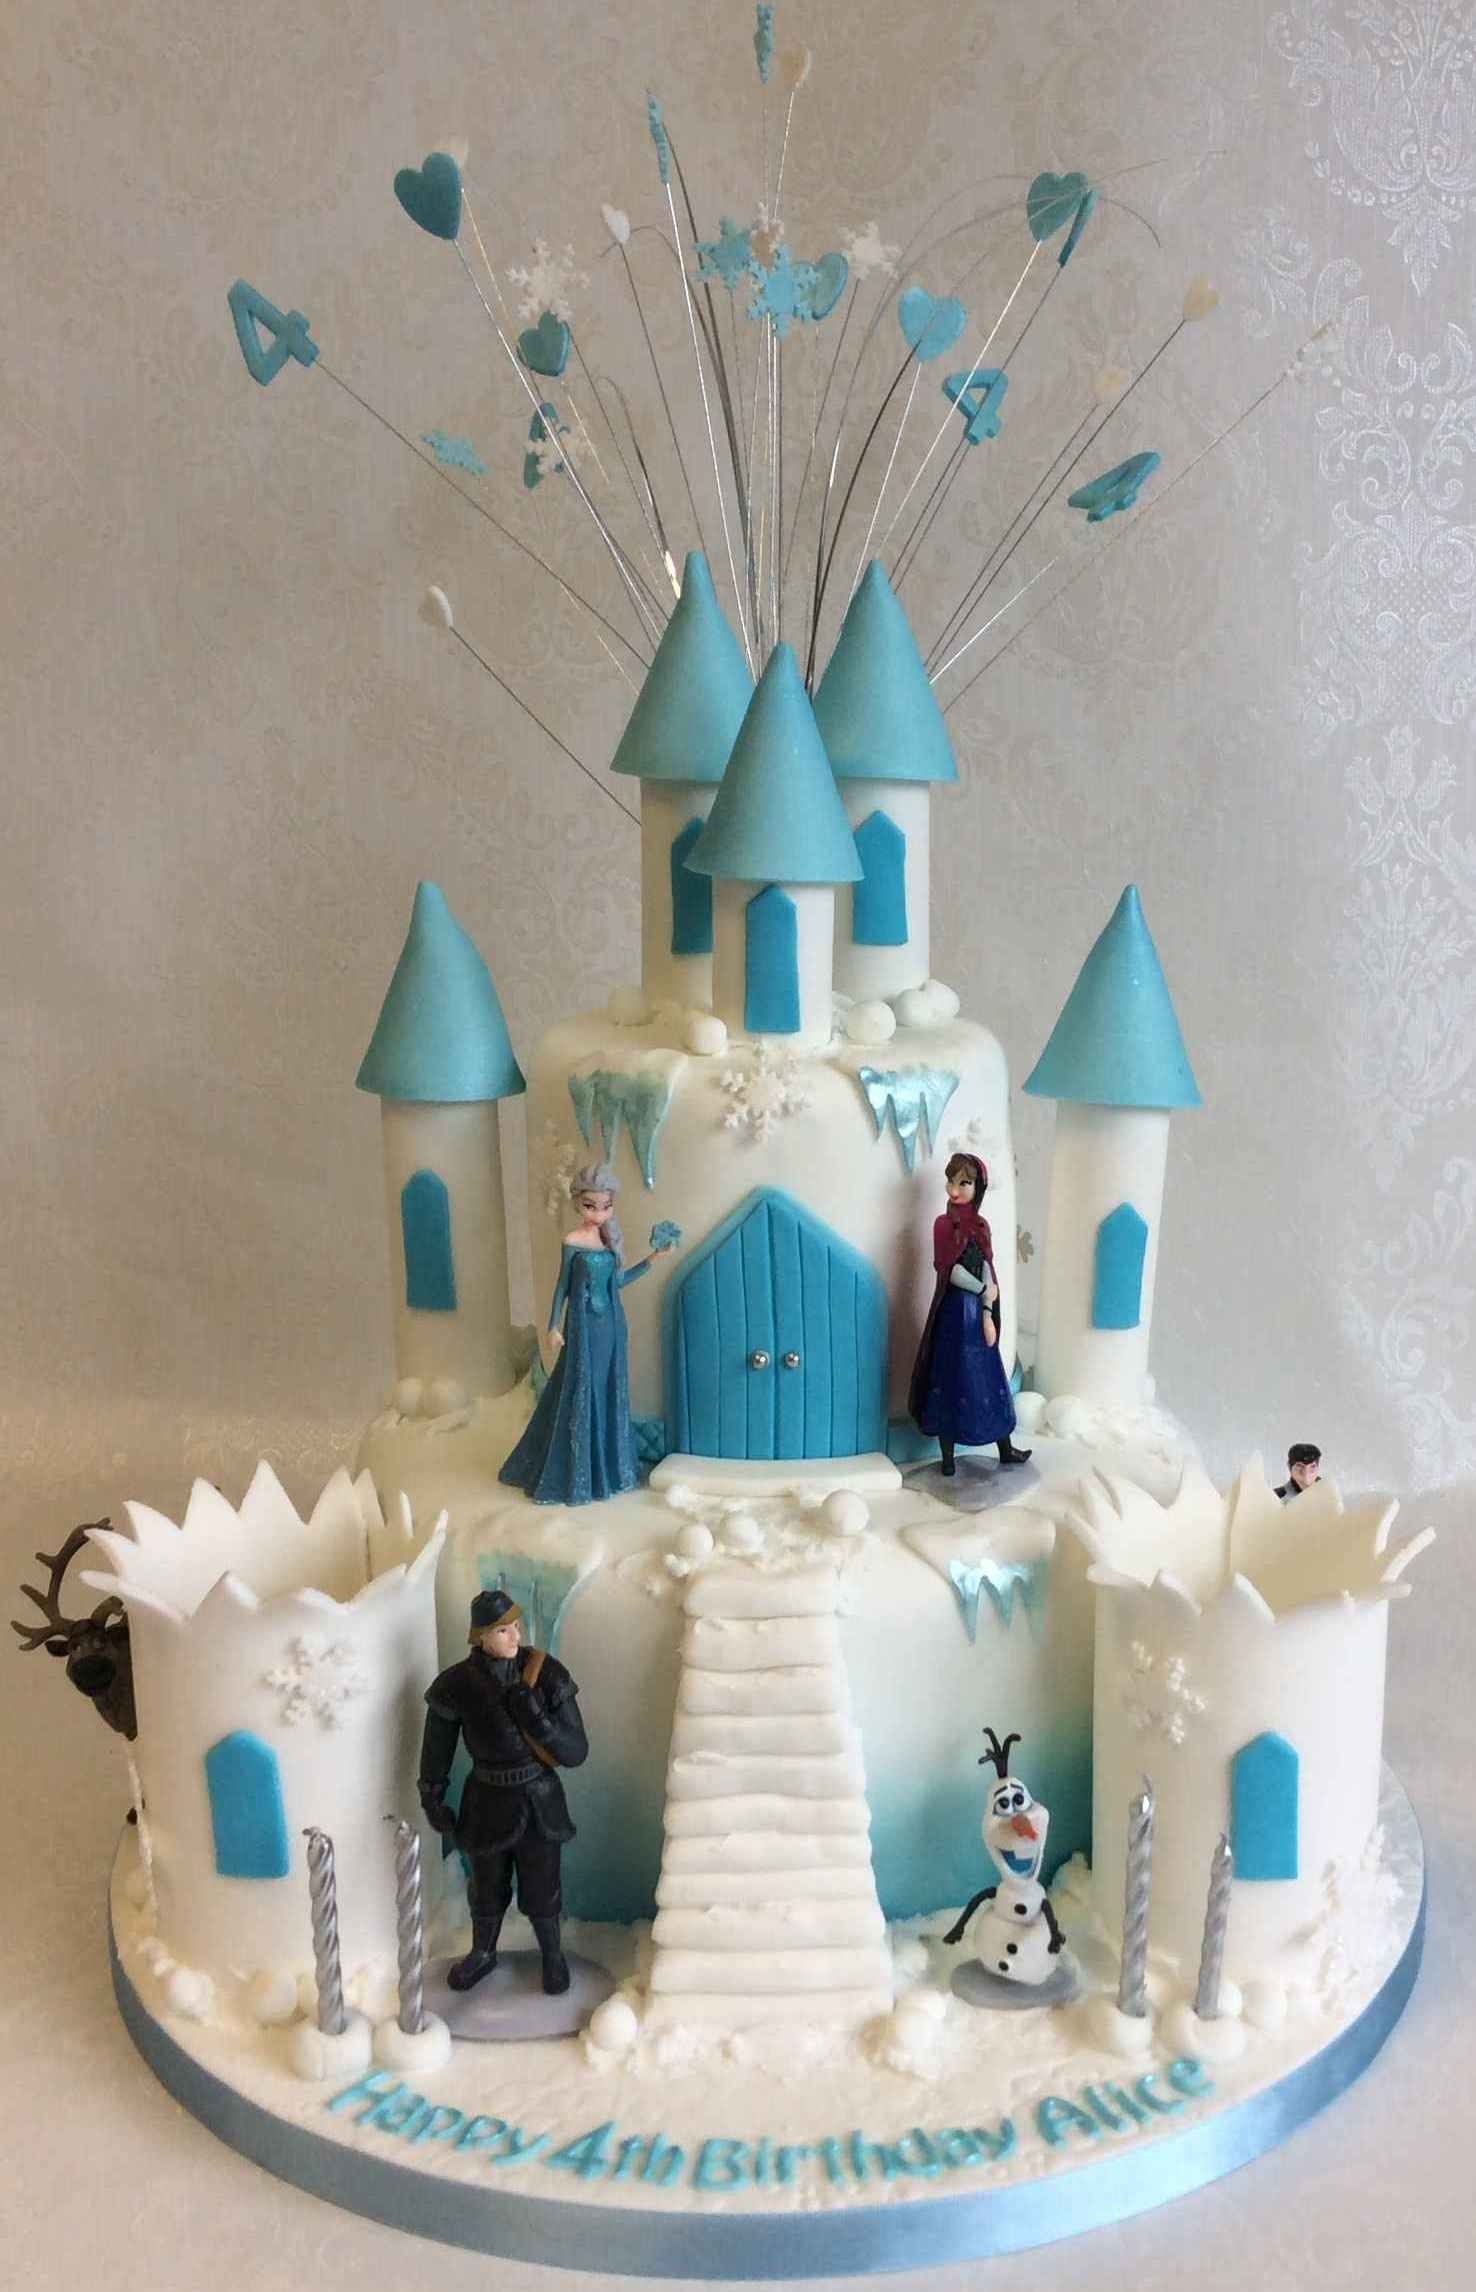 Admirable Small 2 Tier Frozen Castle With Set Of 6 Non Edible Character Funny Birthday Cards Online Overcheapnameinfo